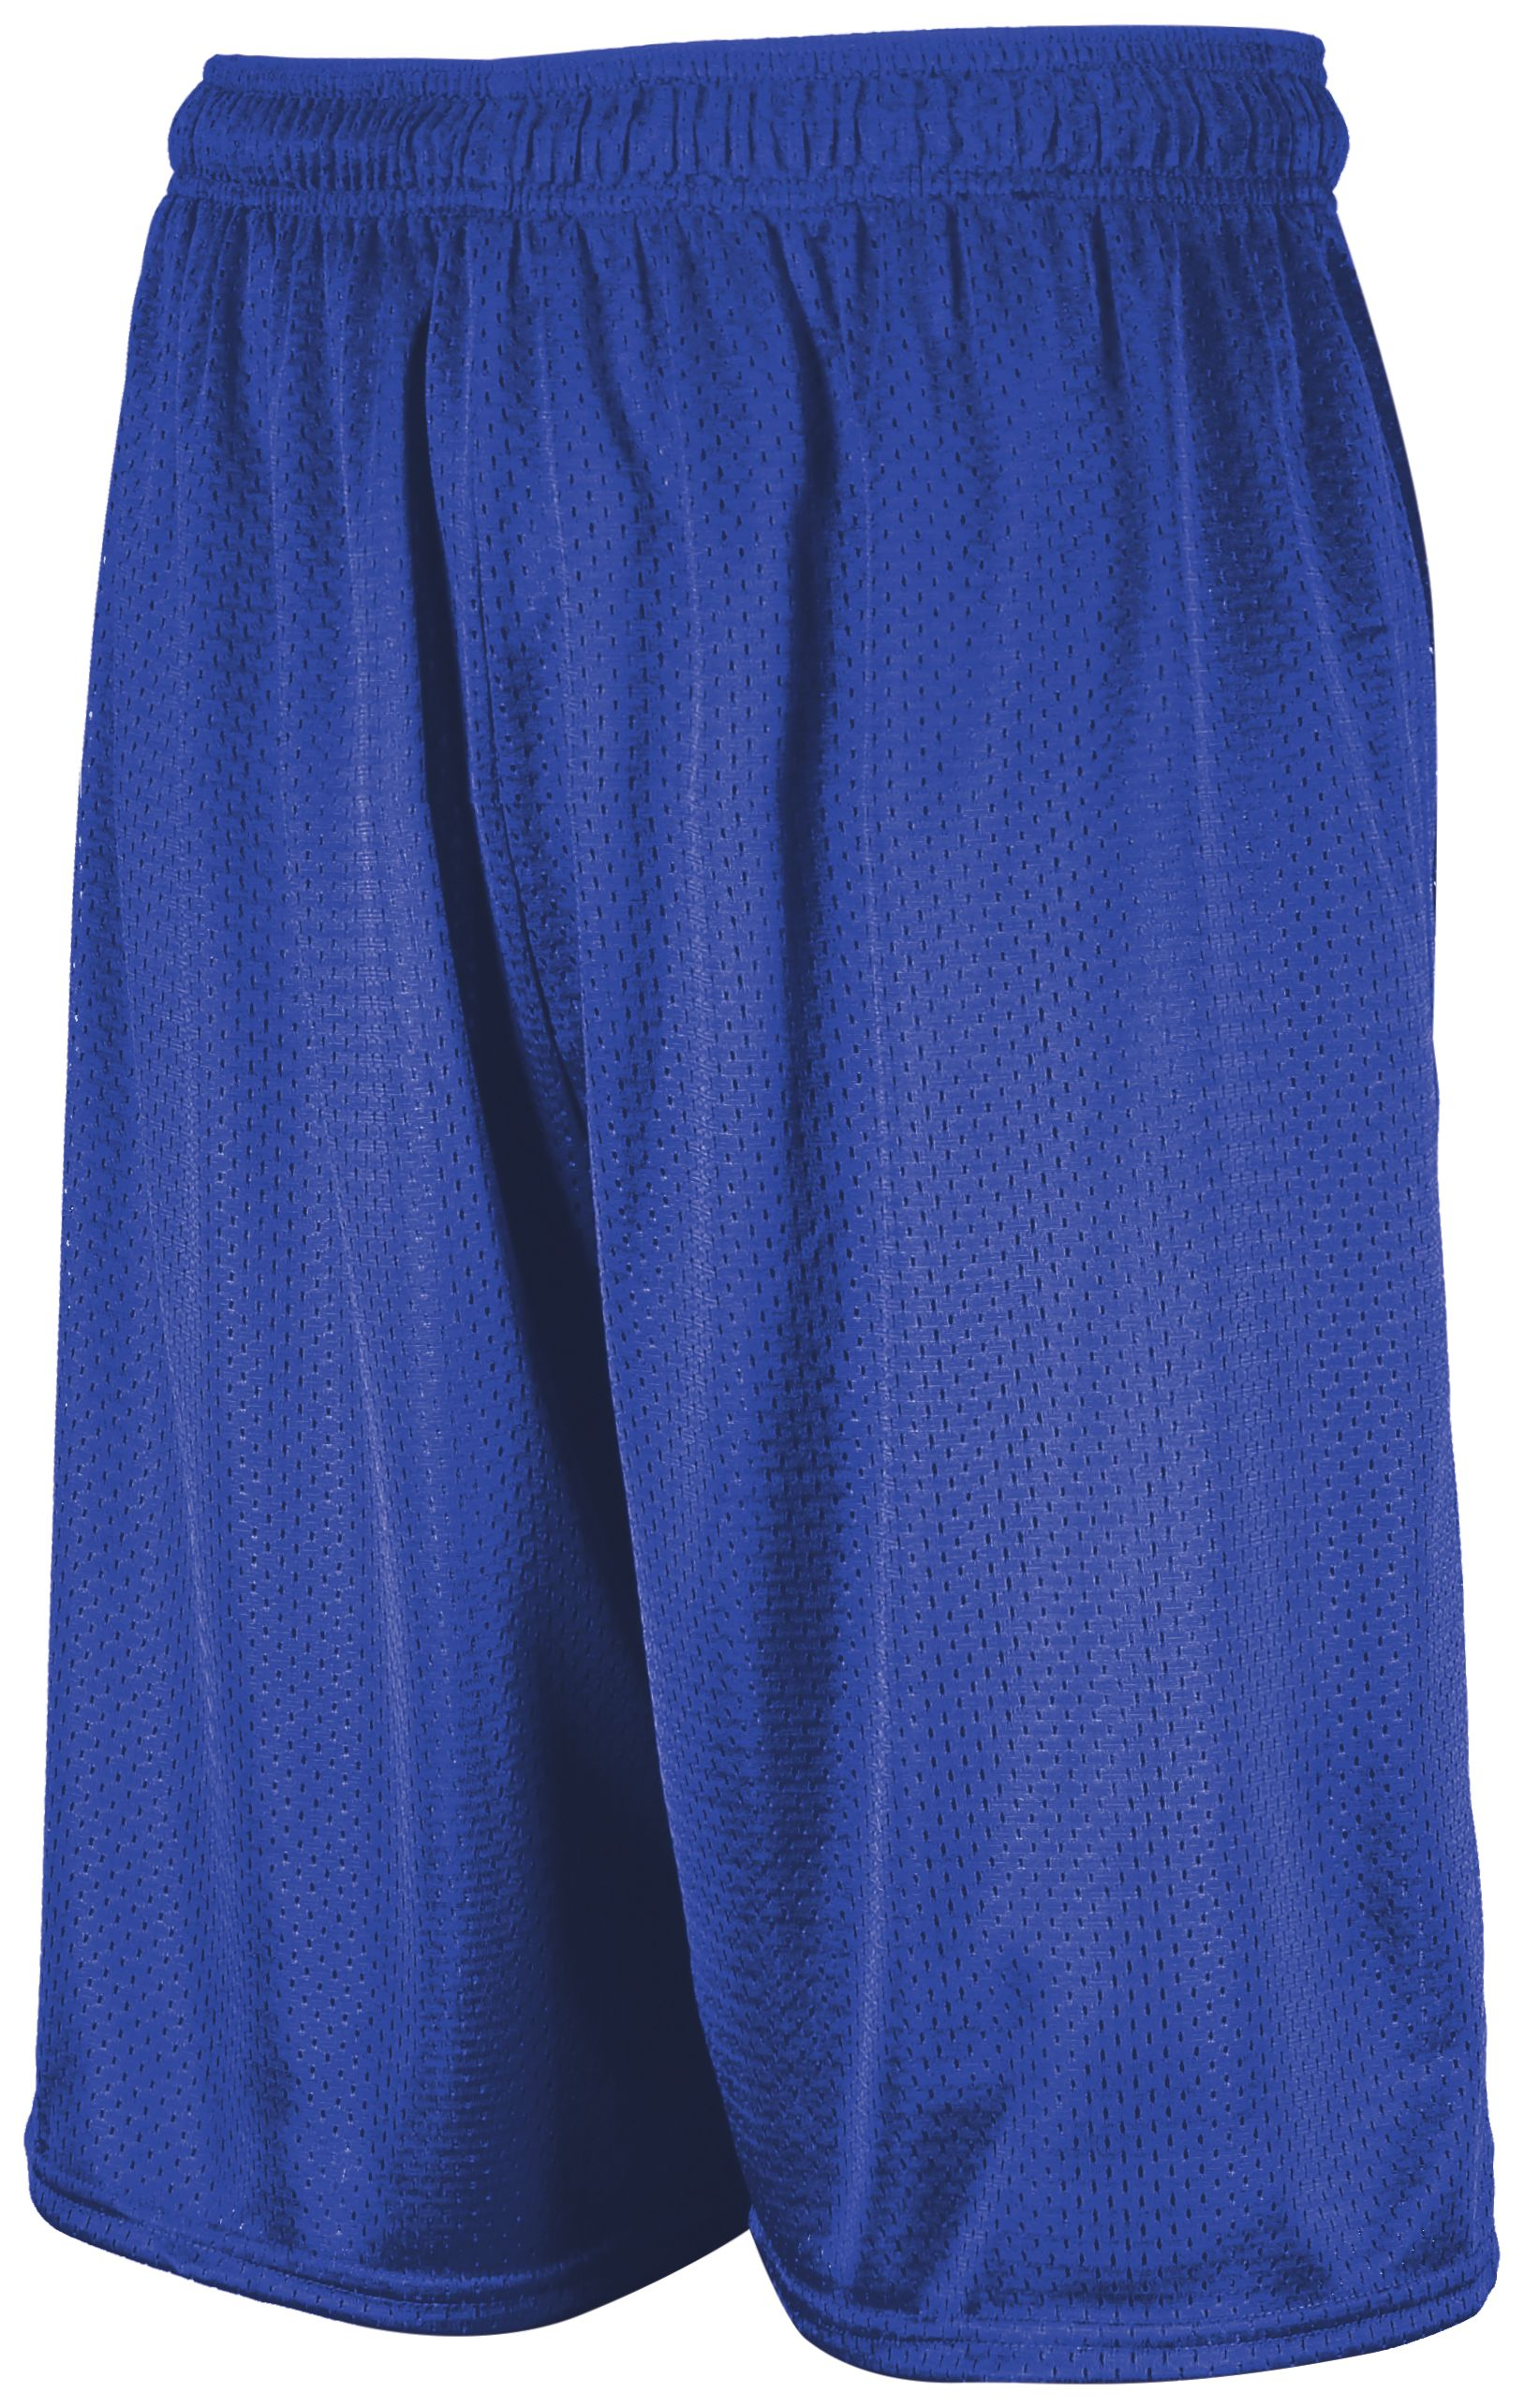 Youth Dri-Power Mesh Shorts - Royal